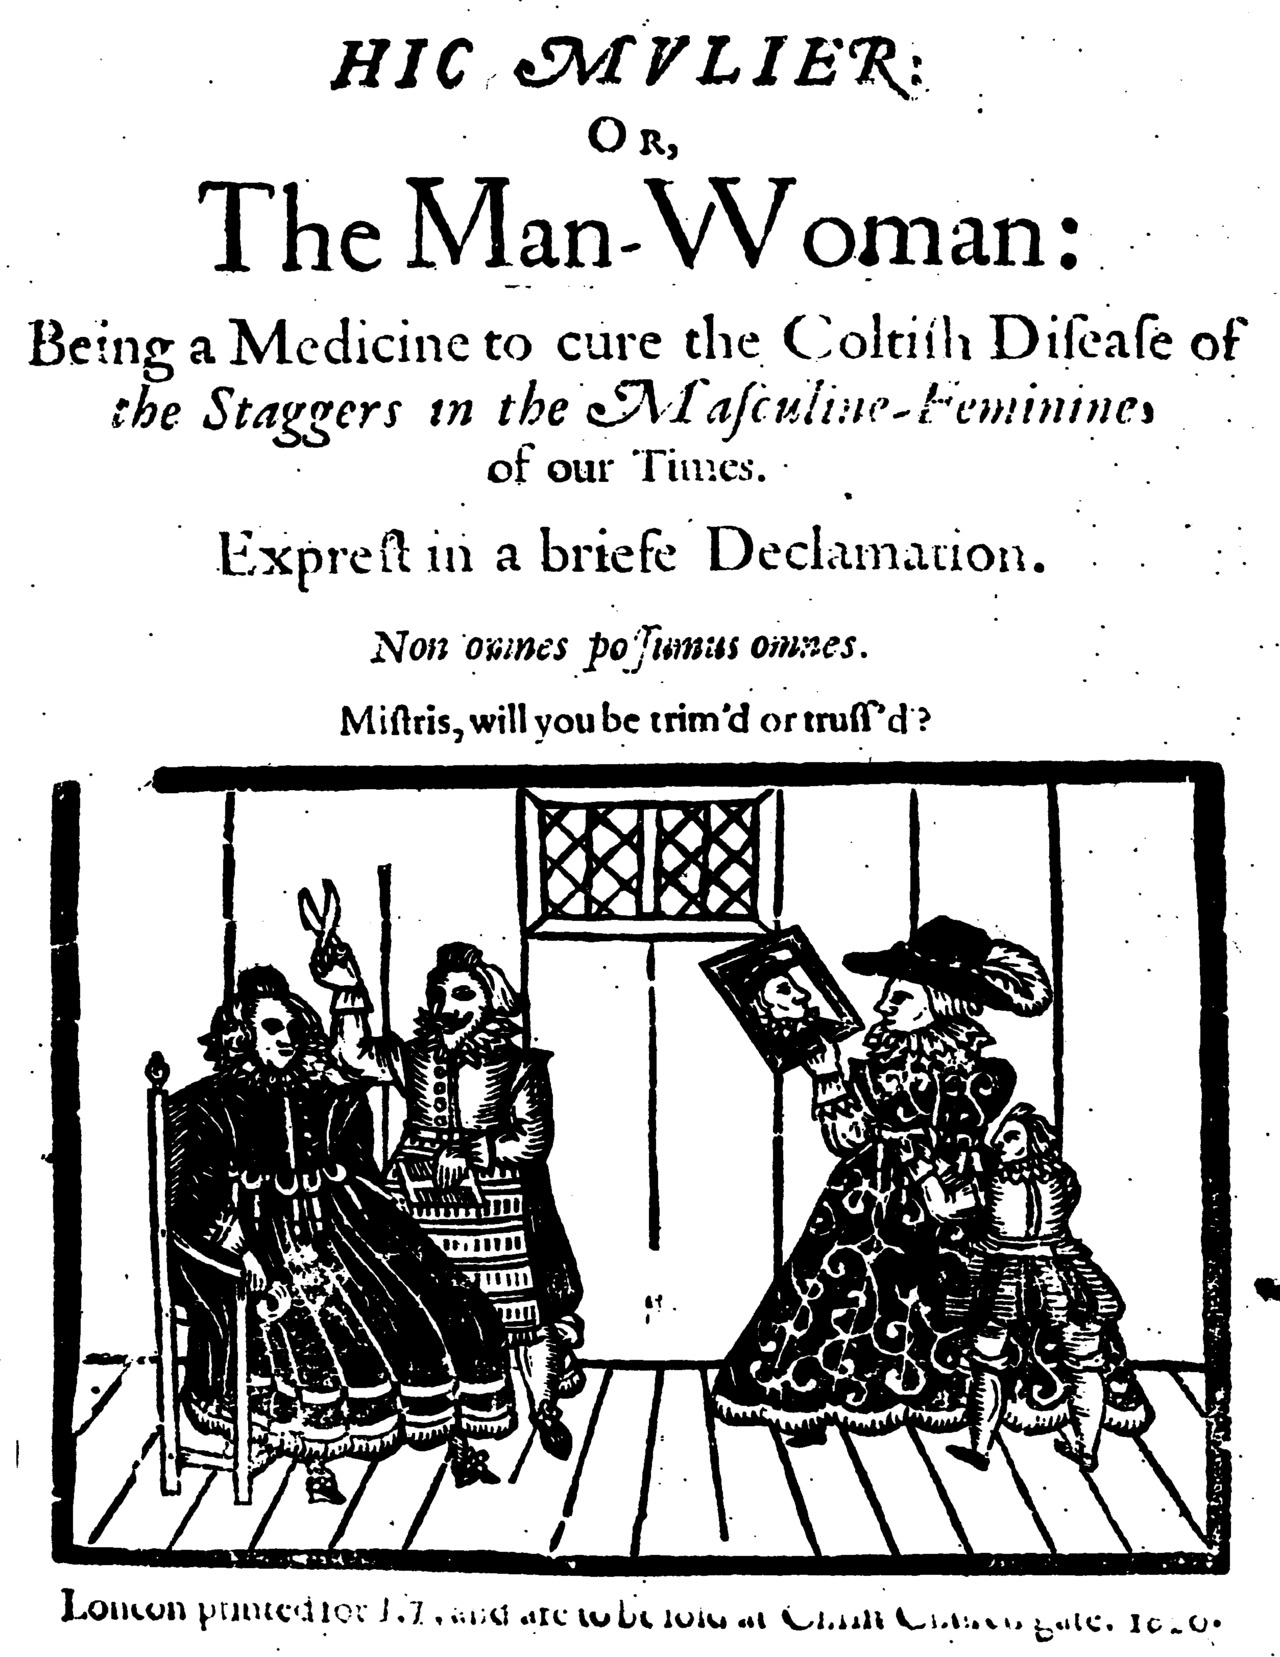 Hic Mulier: Or, The Man-Woman: Being a Medicine to cure the Coltish Disease of the Staggers in the Masculine-Feminine of our Times (London, 1620)